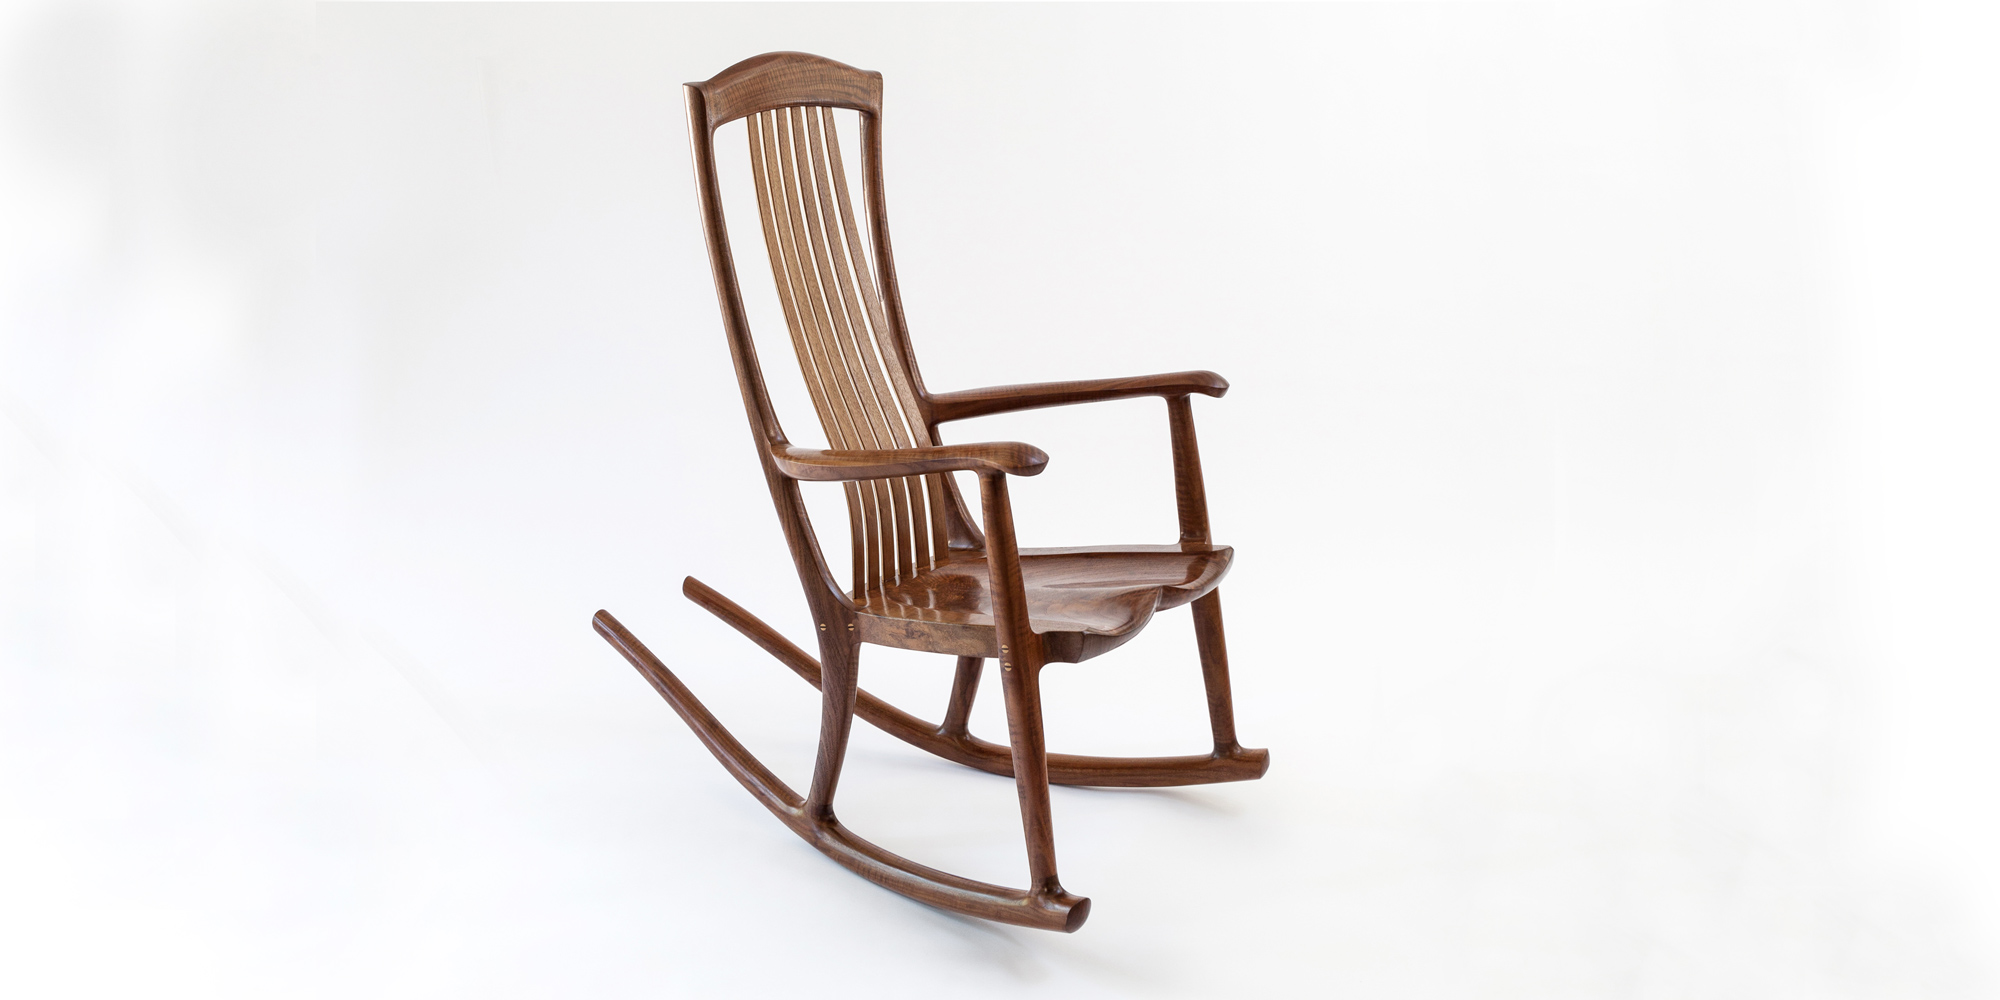 Our signature handmade South Yuba Rocking Chair